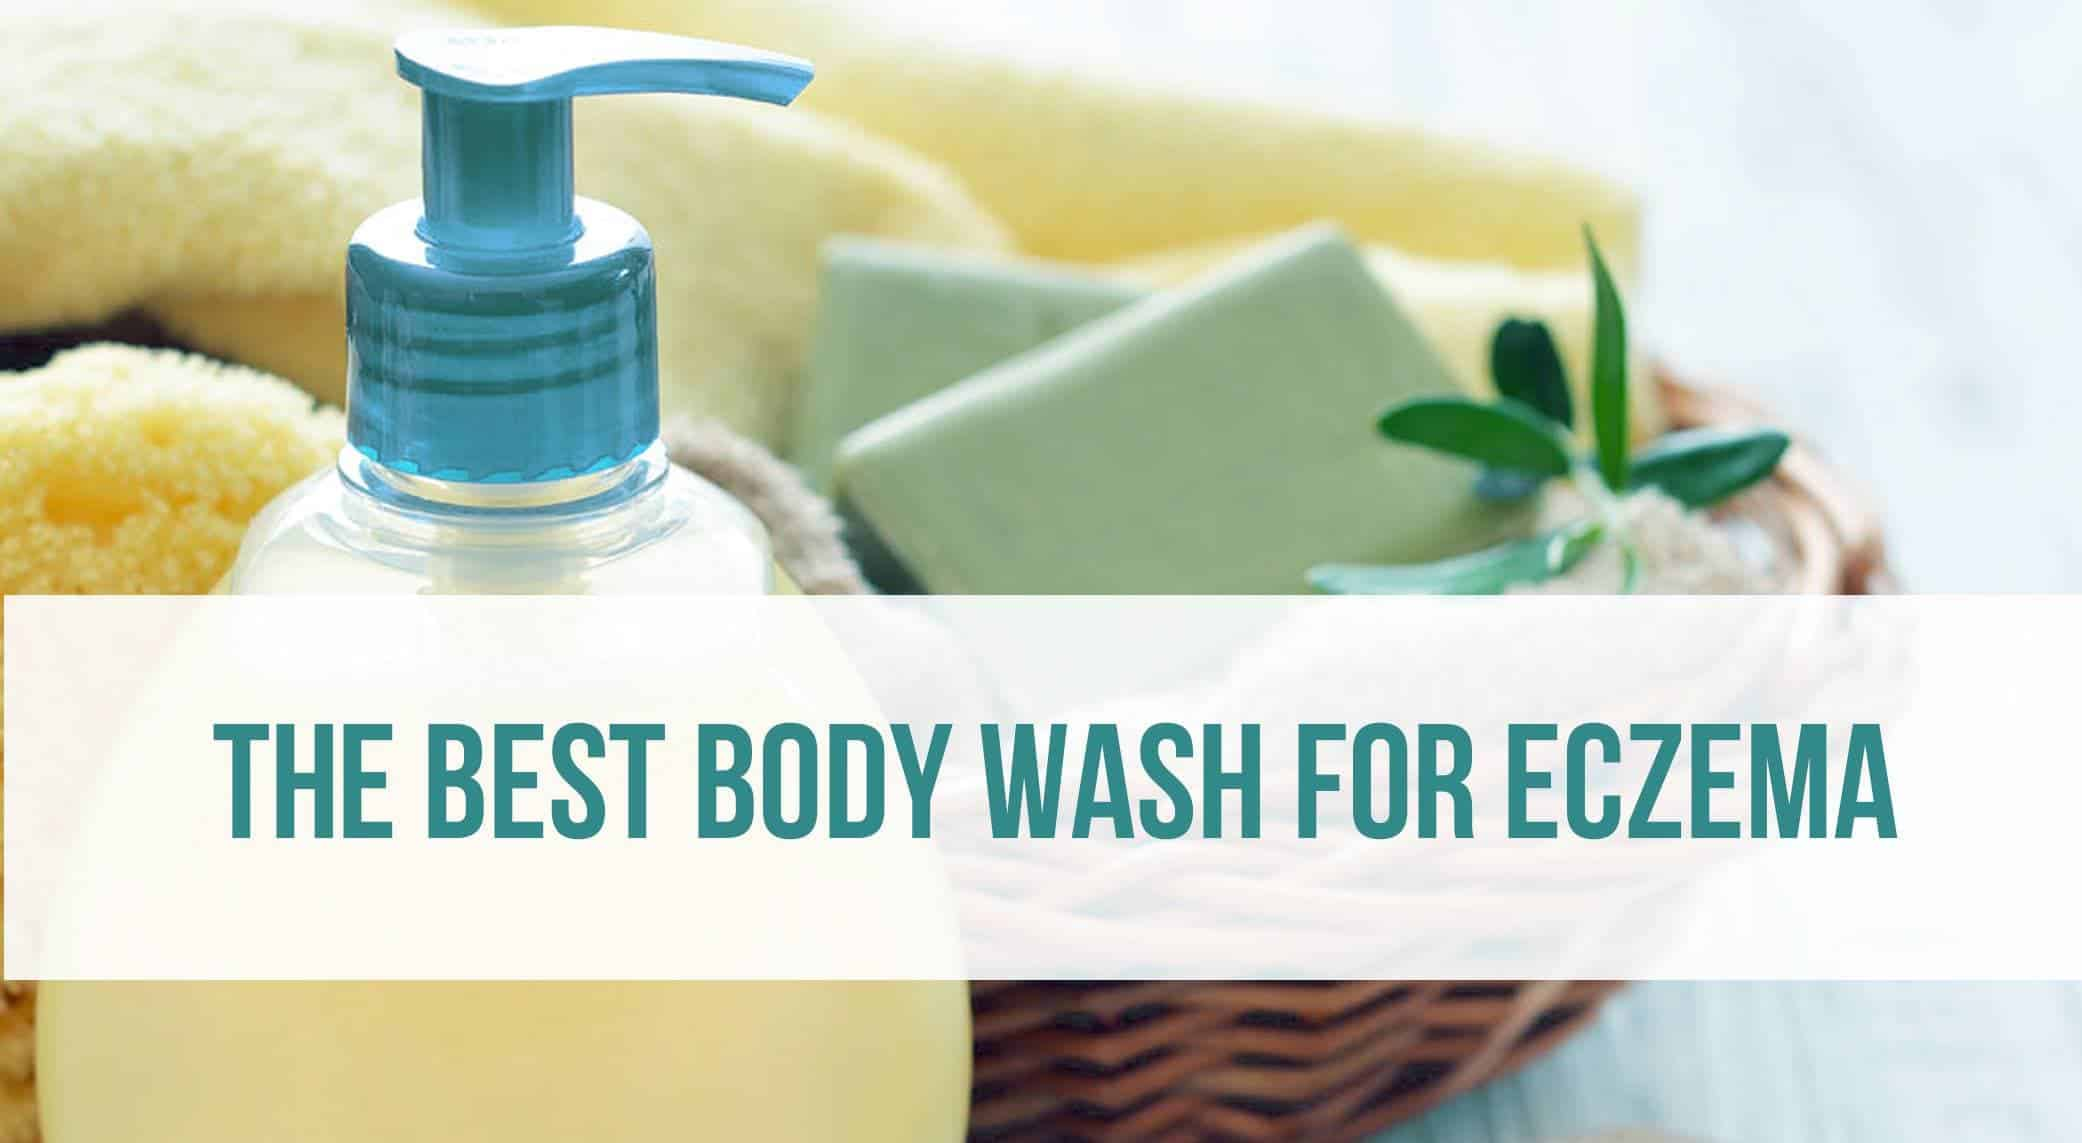 Diy Natural Body Wash For Eczema